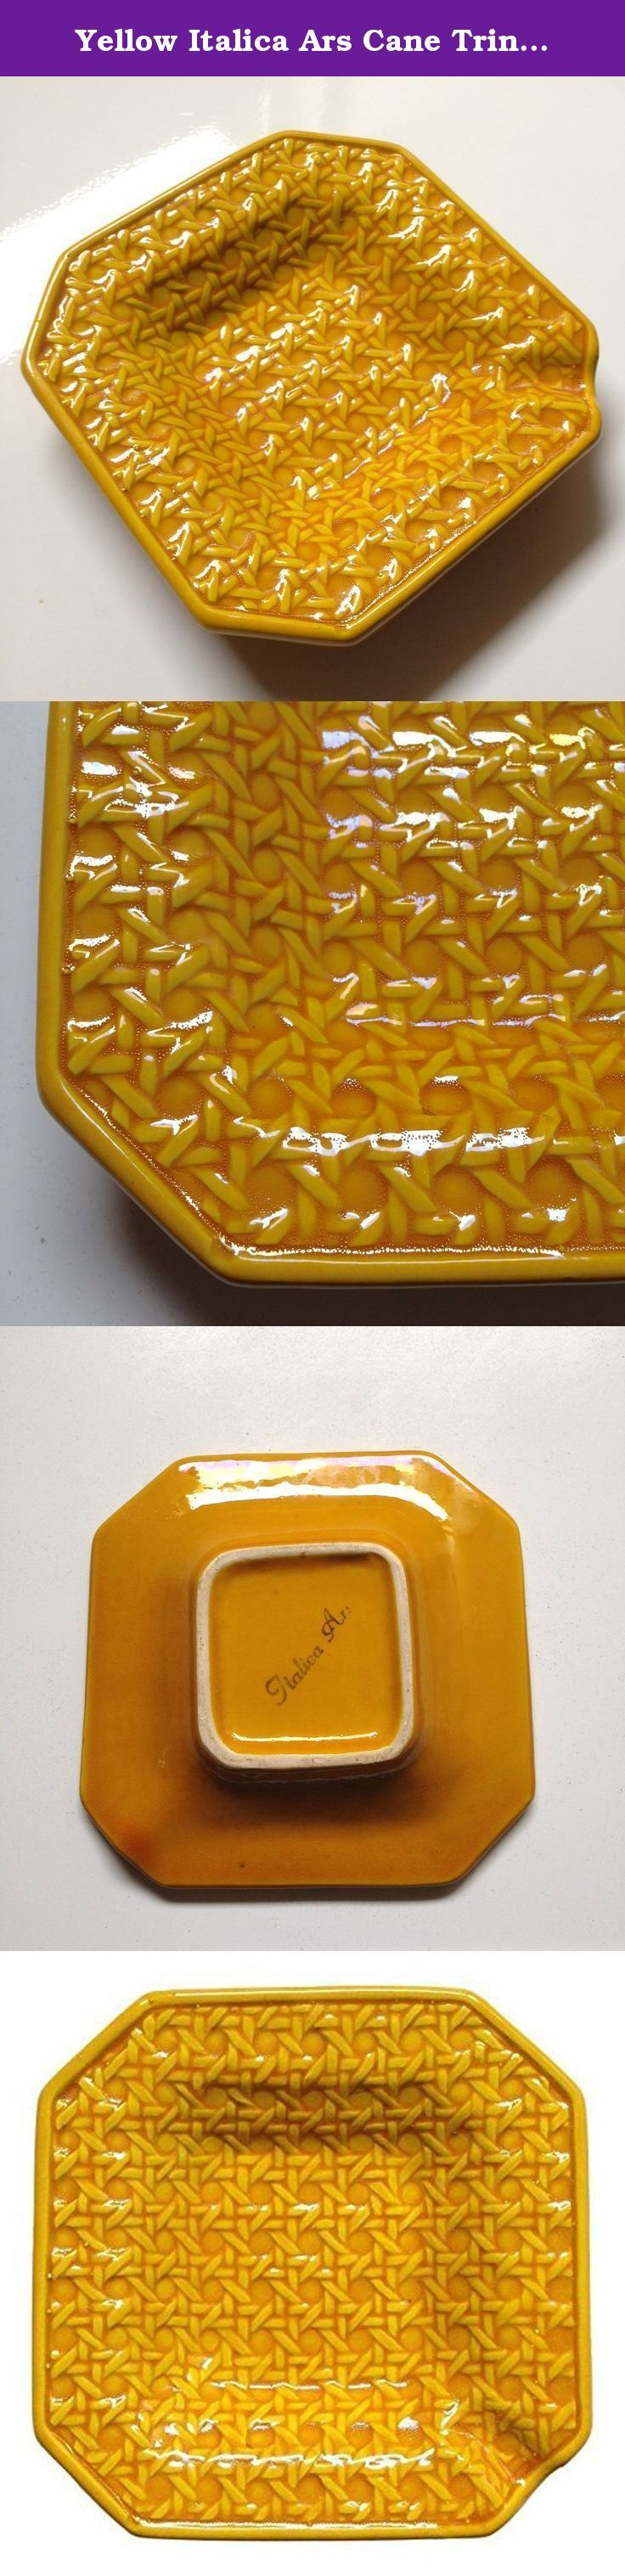 Yellow Italica Ars Cane Trinket Tray. This yellow Mid-Century Italica Ars cane/rattan print ashtray is full of Palm Springs personality! A perfect dish to hold your keys by the front door, contain jewelry by your bed or organized paperclips on your desk! Dimensions 5.25ʺW × 5.25ʺD × 1.0ʺH Made in Italy.